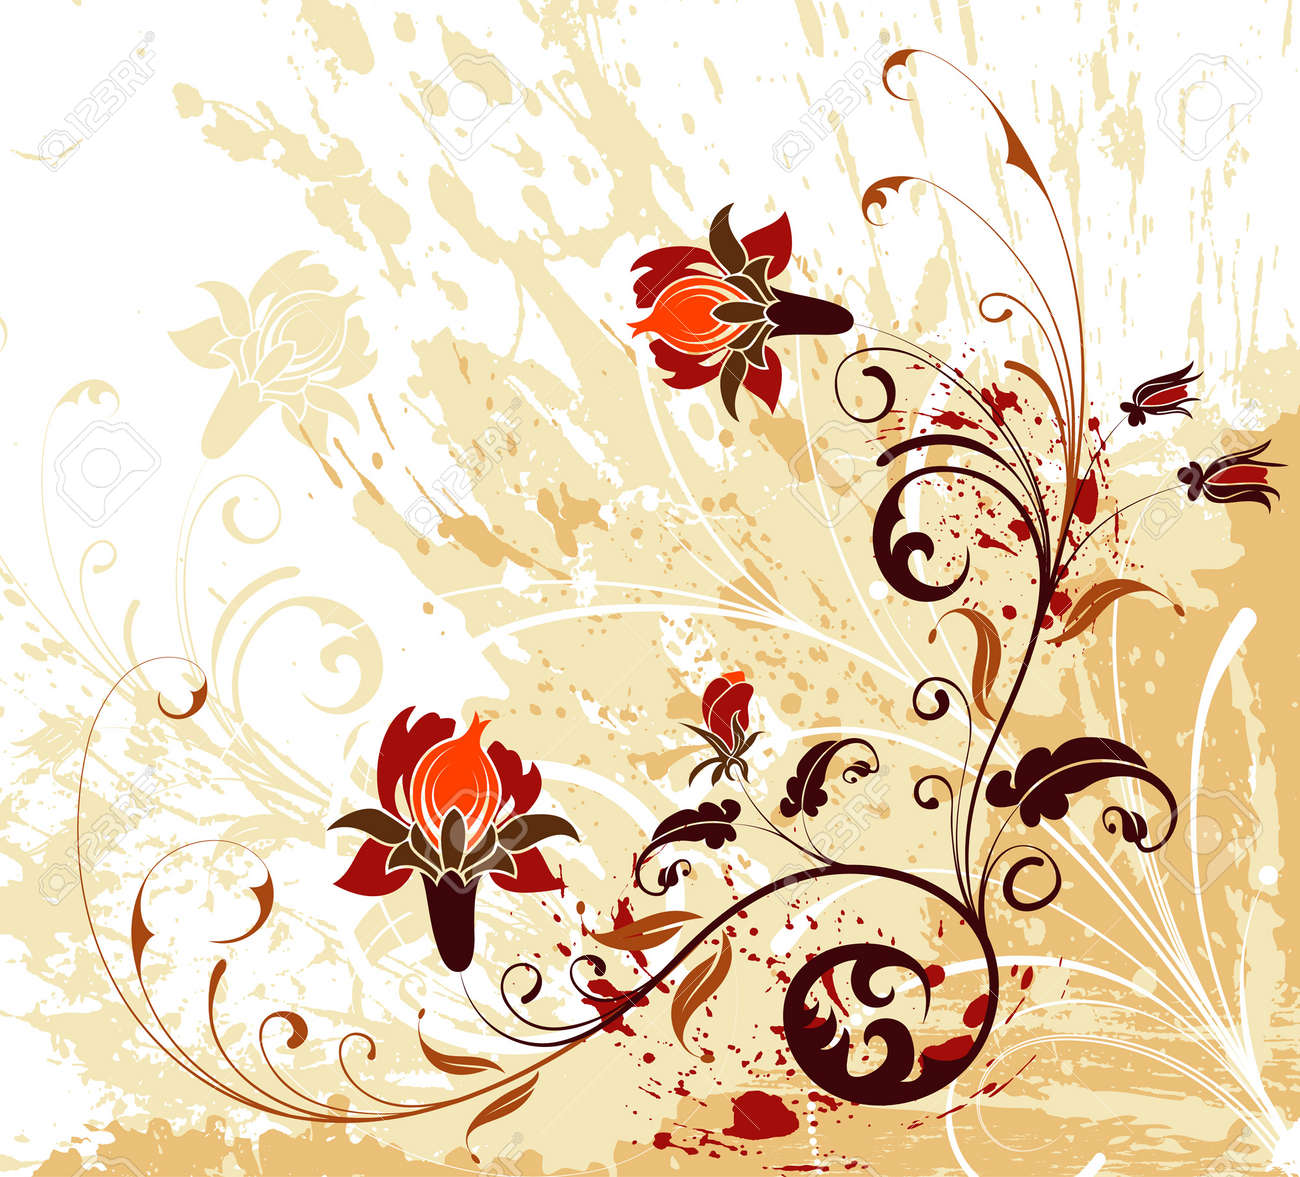 Grunge paint flower background with splashes, element for design, vector illustration Stock Vector - 1738497